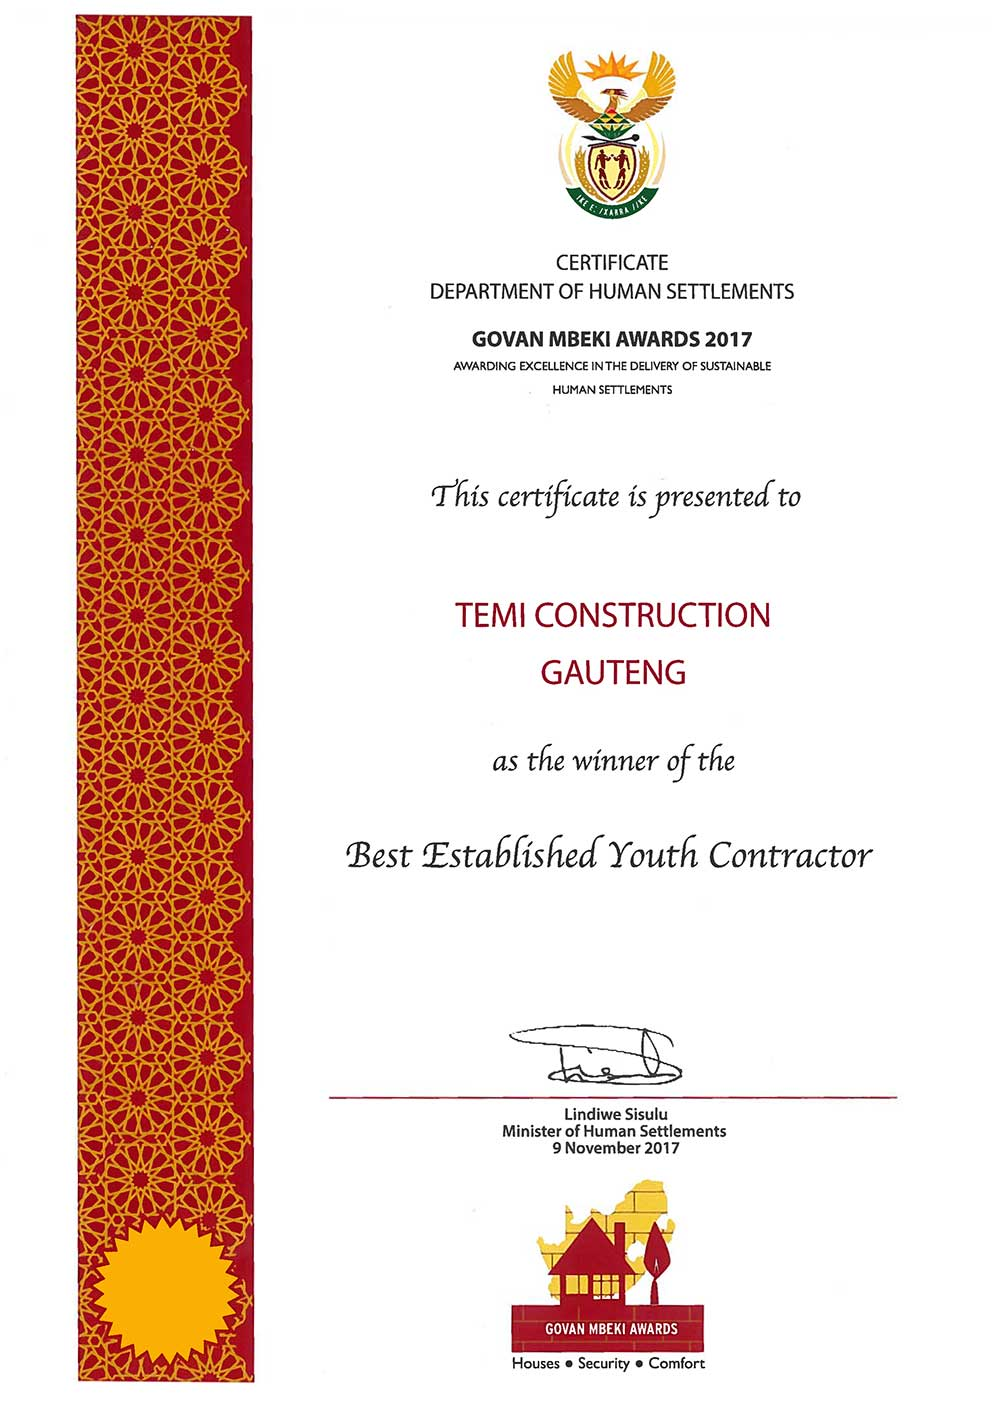 best established youth contractor 2017 temi00 - Hometest